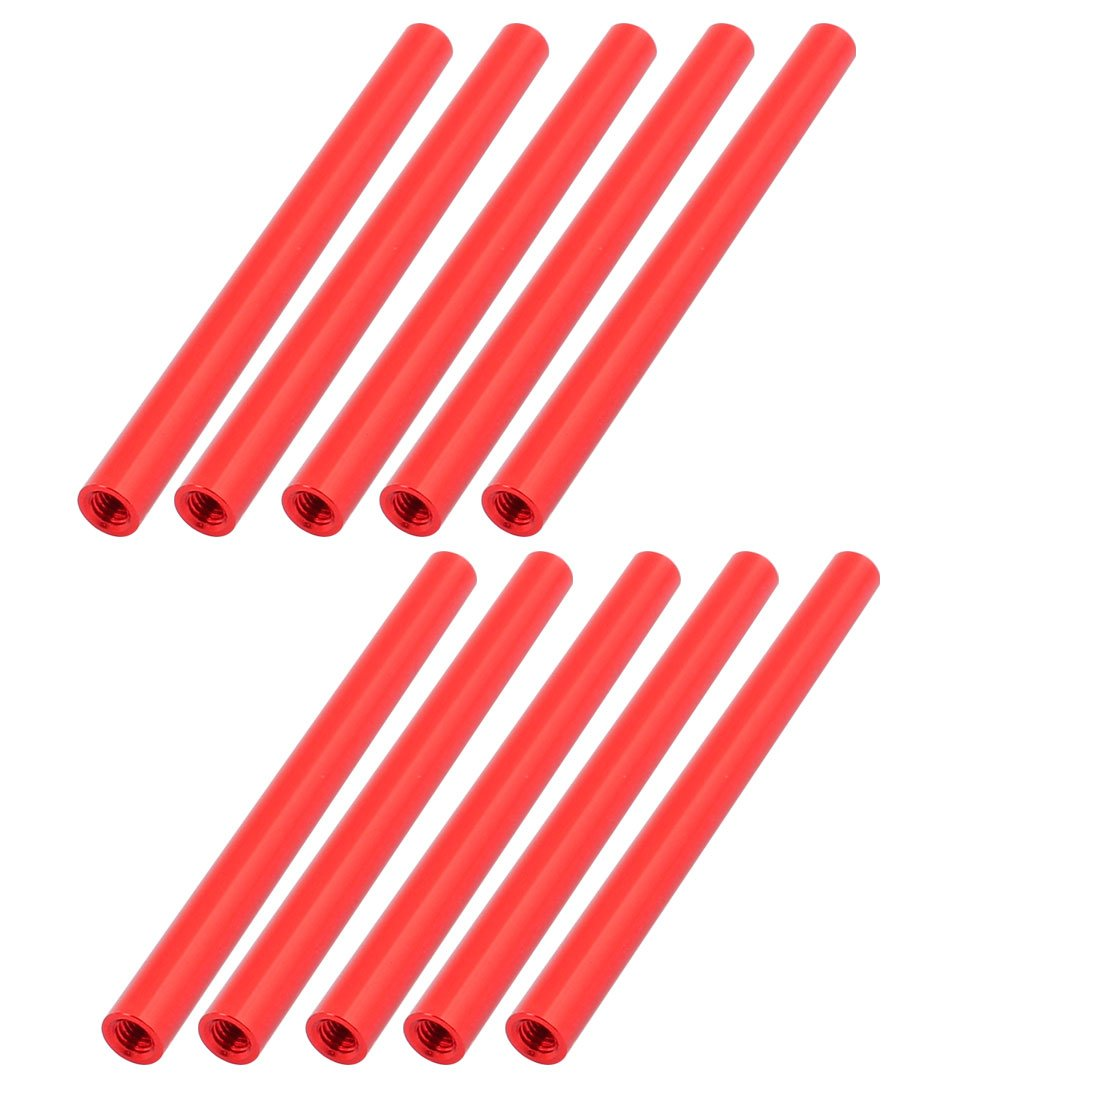 uxcell 10 Pcs M3 x 60mm Round Aluminum Column Alloy Standoff Spacer Stud Fastener for Quadcopter Red